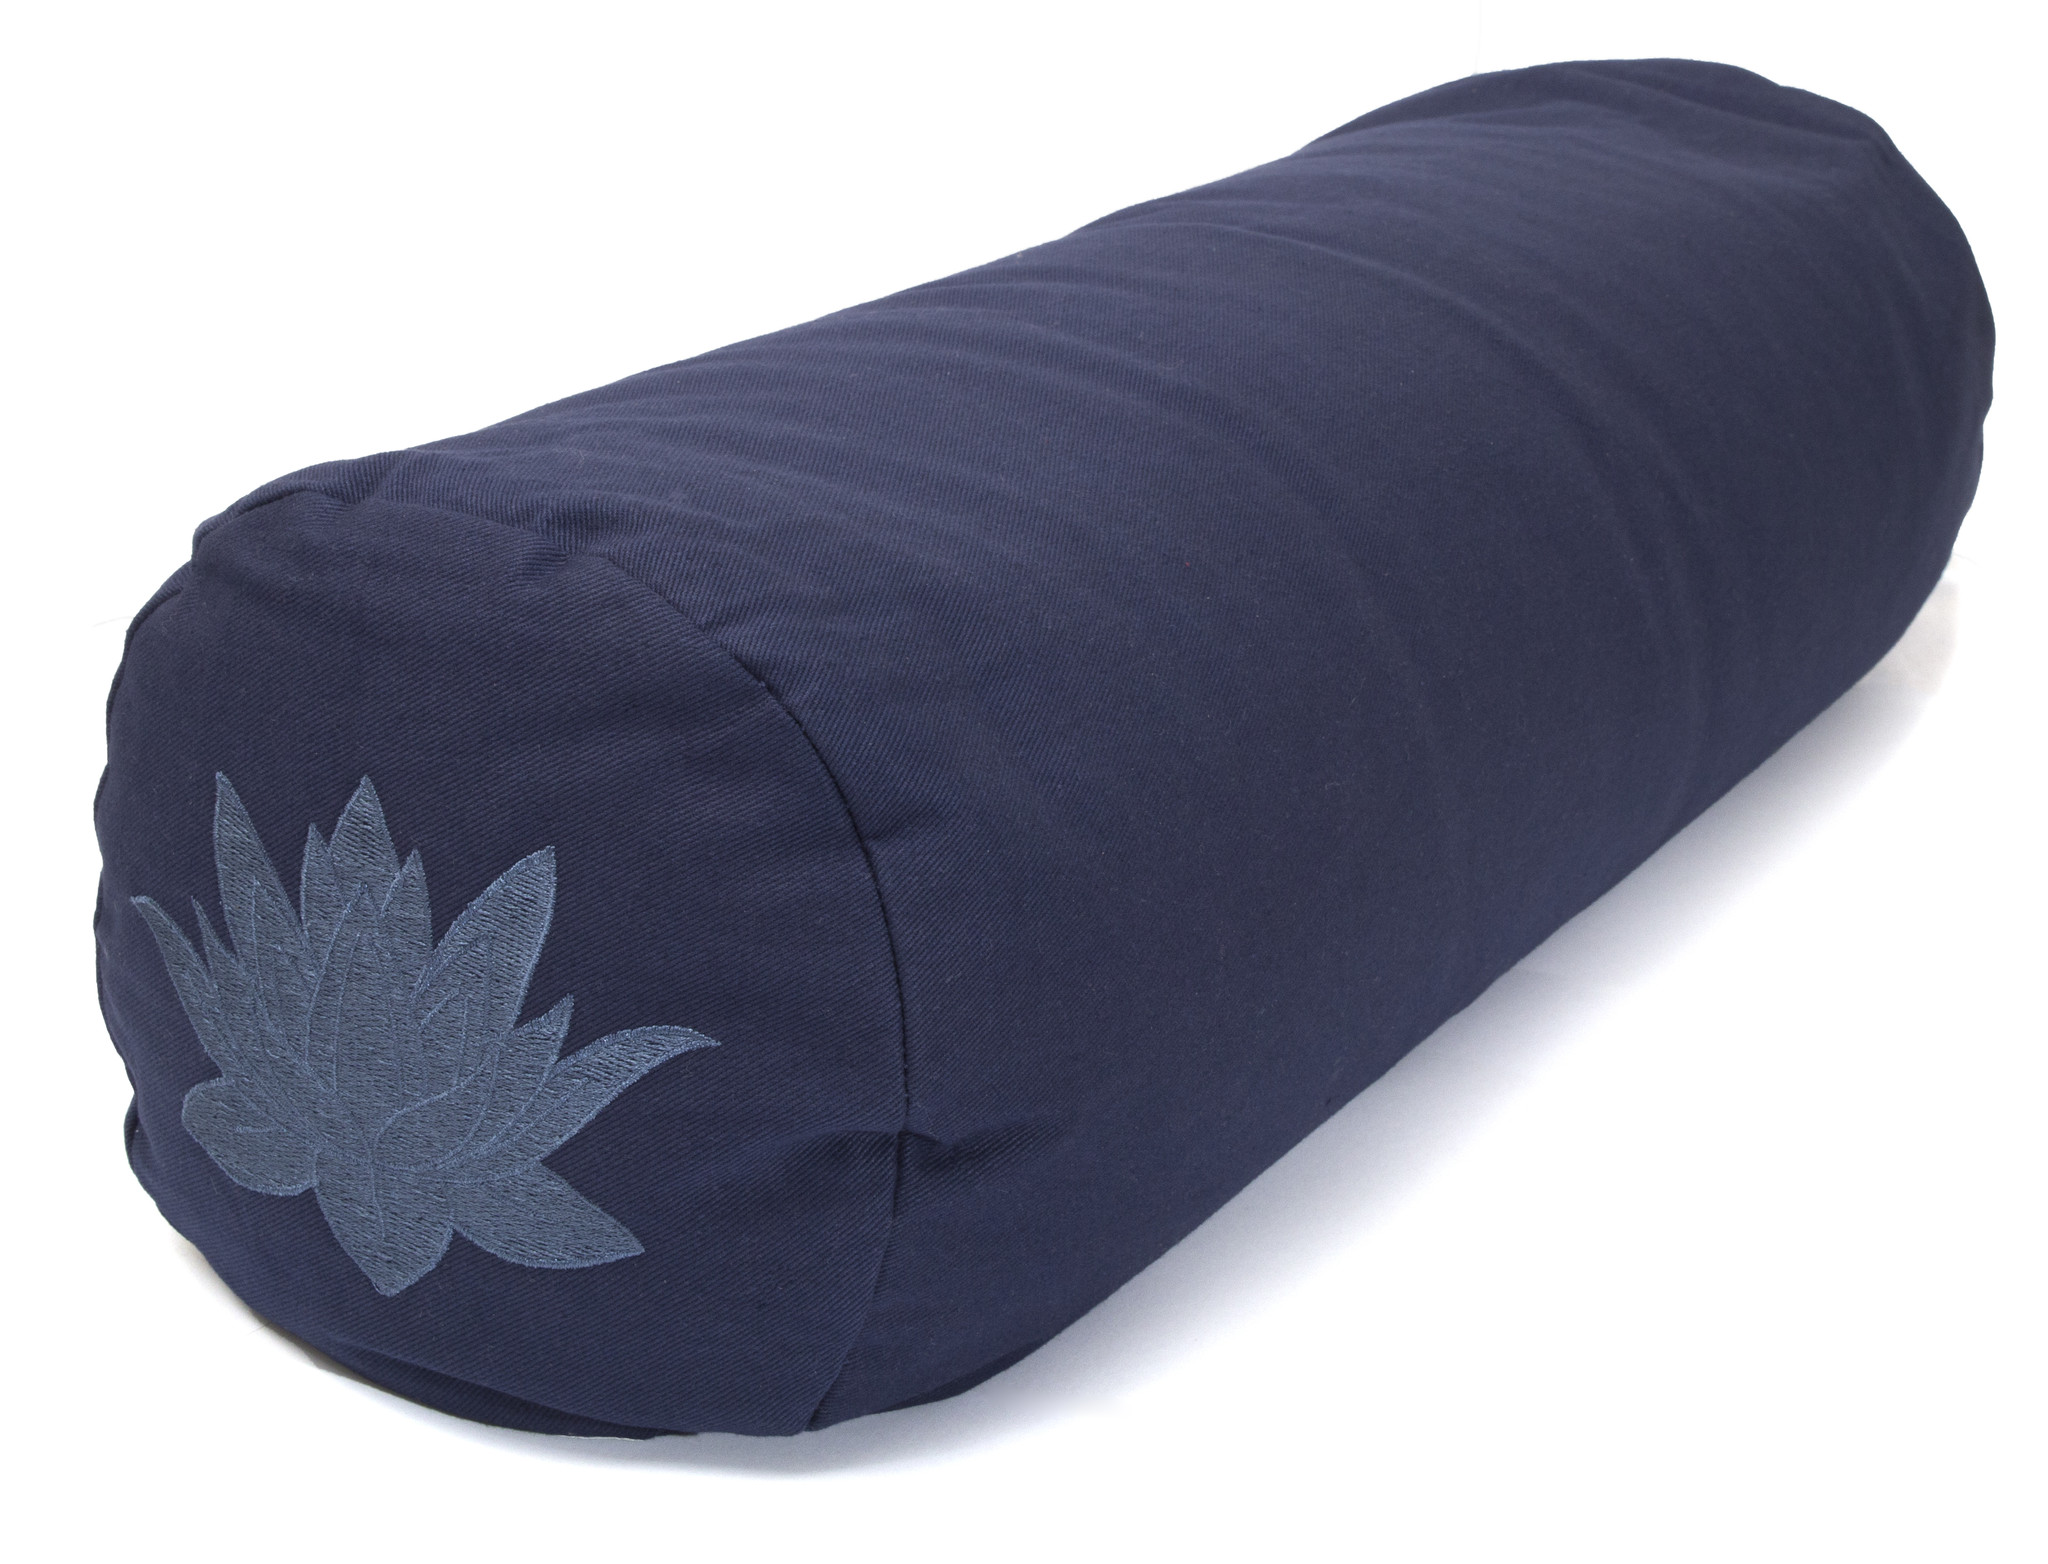 The Leachco Grow-to-Sleep Cover for Body Pillow provides a cozy extra cover while nursing. Made from soft cotton for extra comfort, this cover is compatible with the Grow-to-Sleep pillow (sold separately).